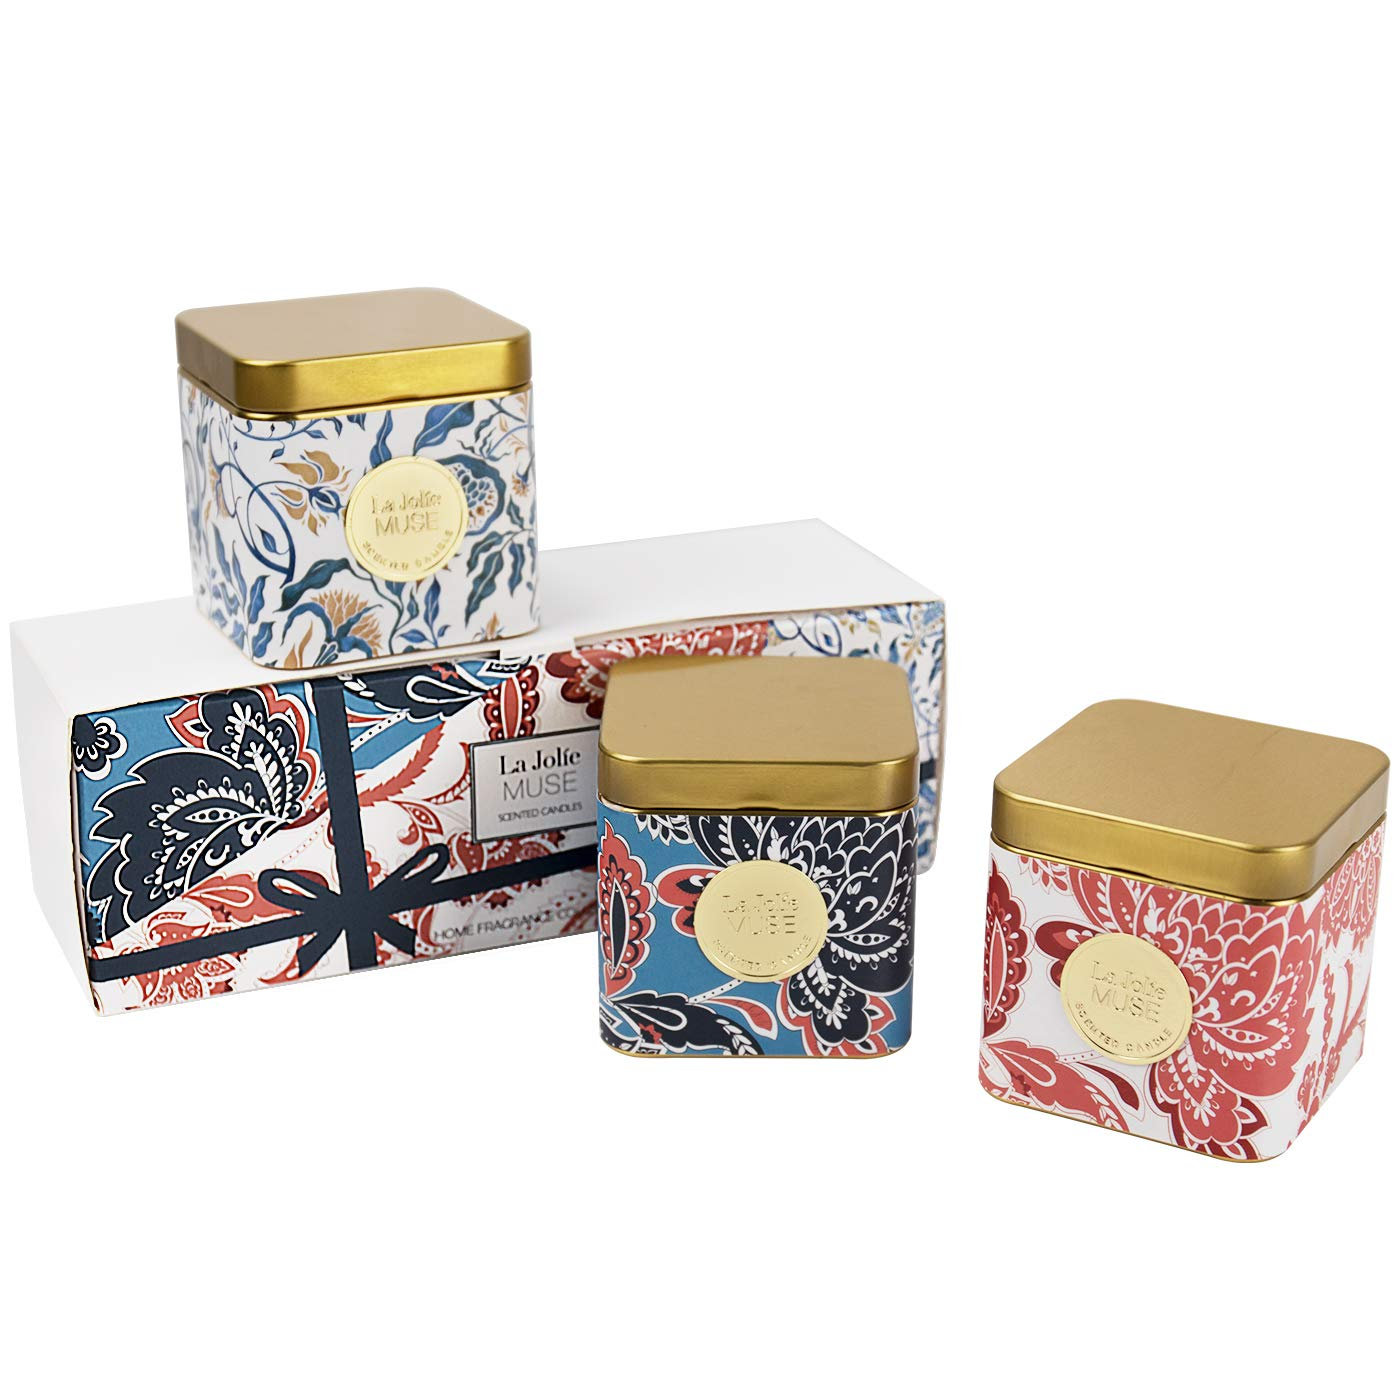 LA JOLIE MUSE Scented Candles Gift Set - Natural Soy Wax Mood Candles, 3 Small Travel Tin Aromatherapy Candles, 400g Mini Stress Relief Portable Essential Oil Candles, Relaxing Gift (Gold Trio) by LA JOLIE MUSE